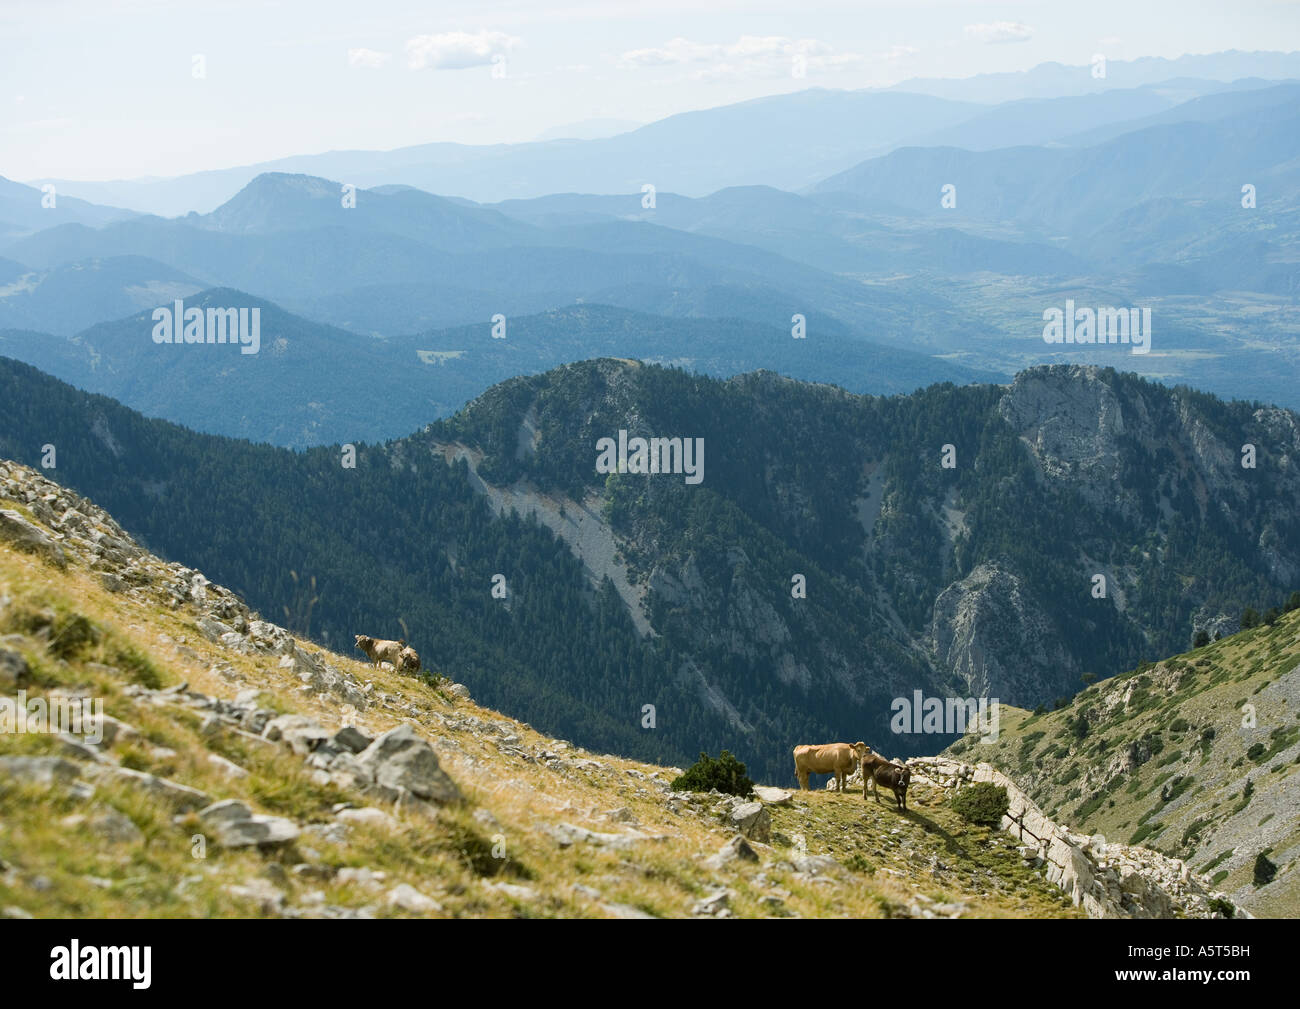 Mountainous landscape with cows - Stock Image